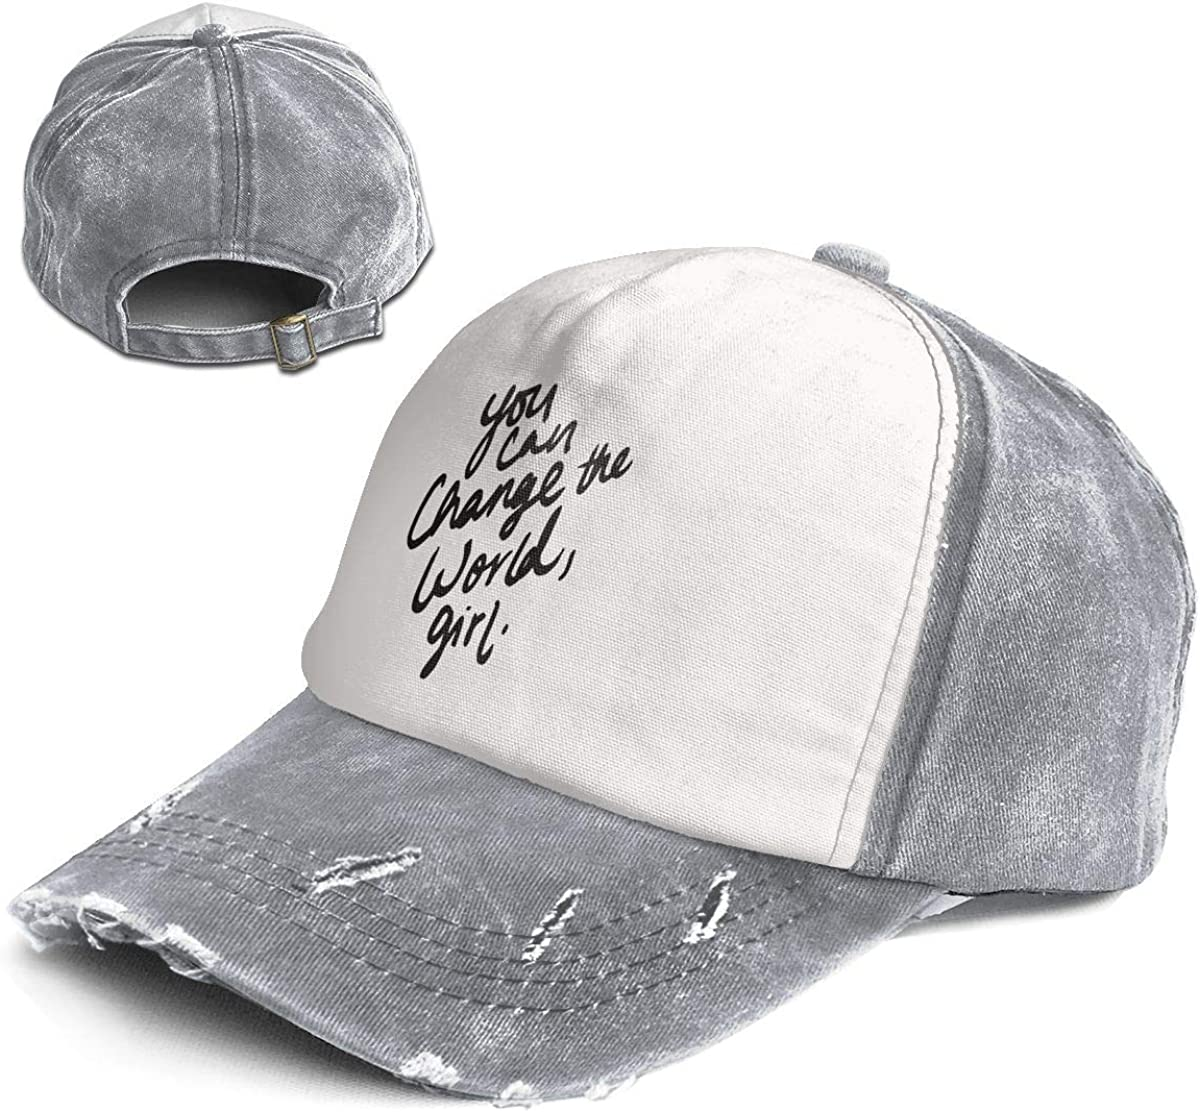 Girl Multicolor Adjustable Baseball Cap Dad Hat Vintage General-Purpose You Can Change The World